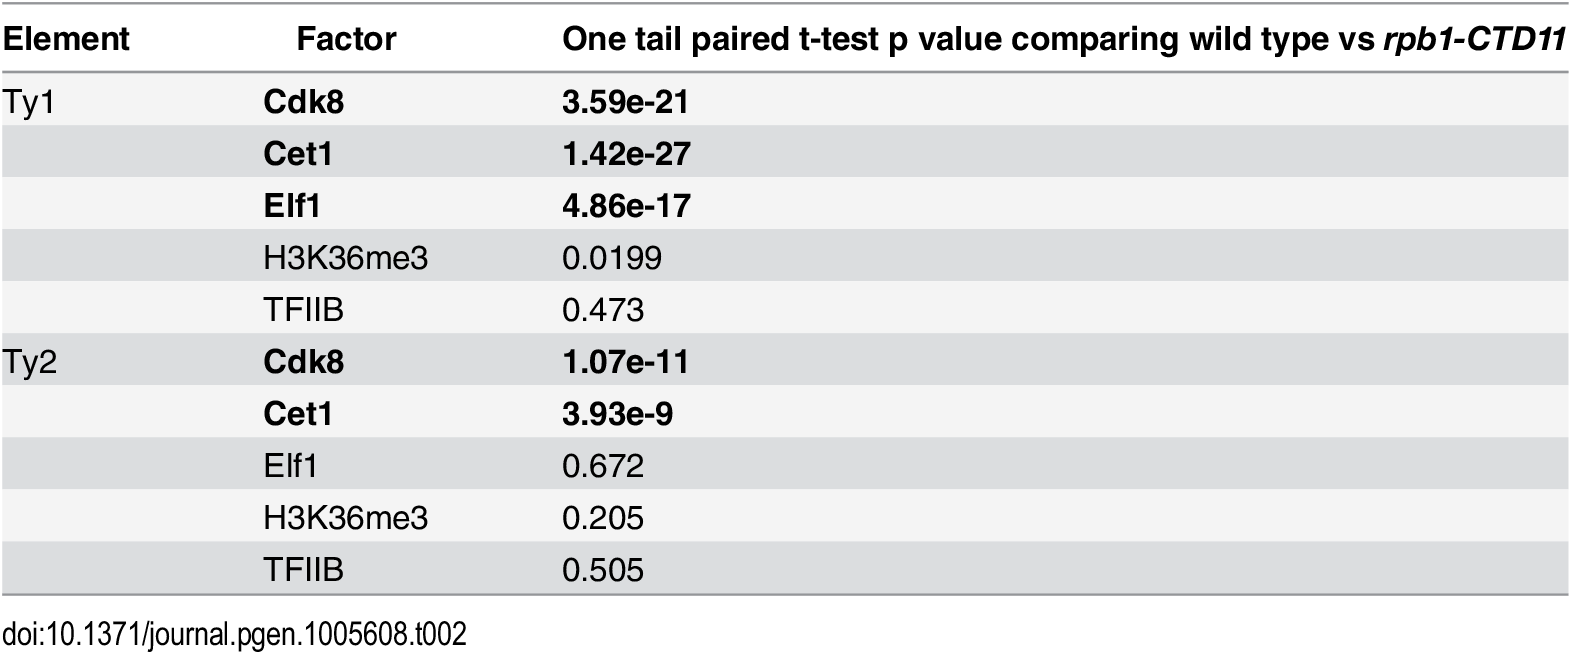 Paired t-test p values comparing the levels of transcription or chromatin-related factors in wild type vs <i>rpb1-CTD11</i> at all retrotransposons.